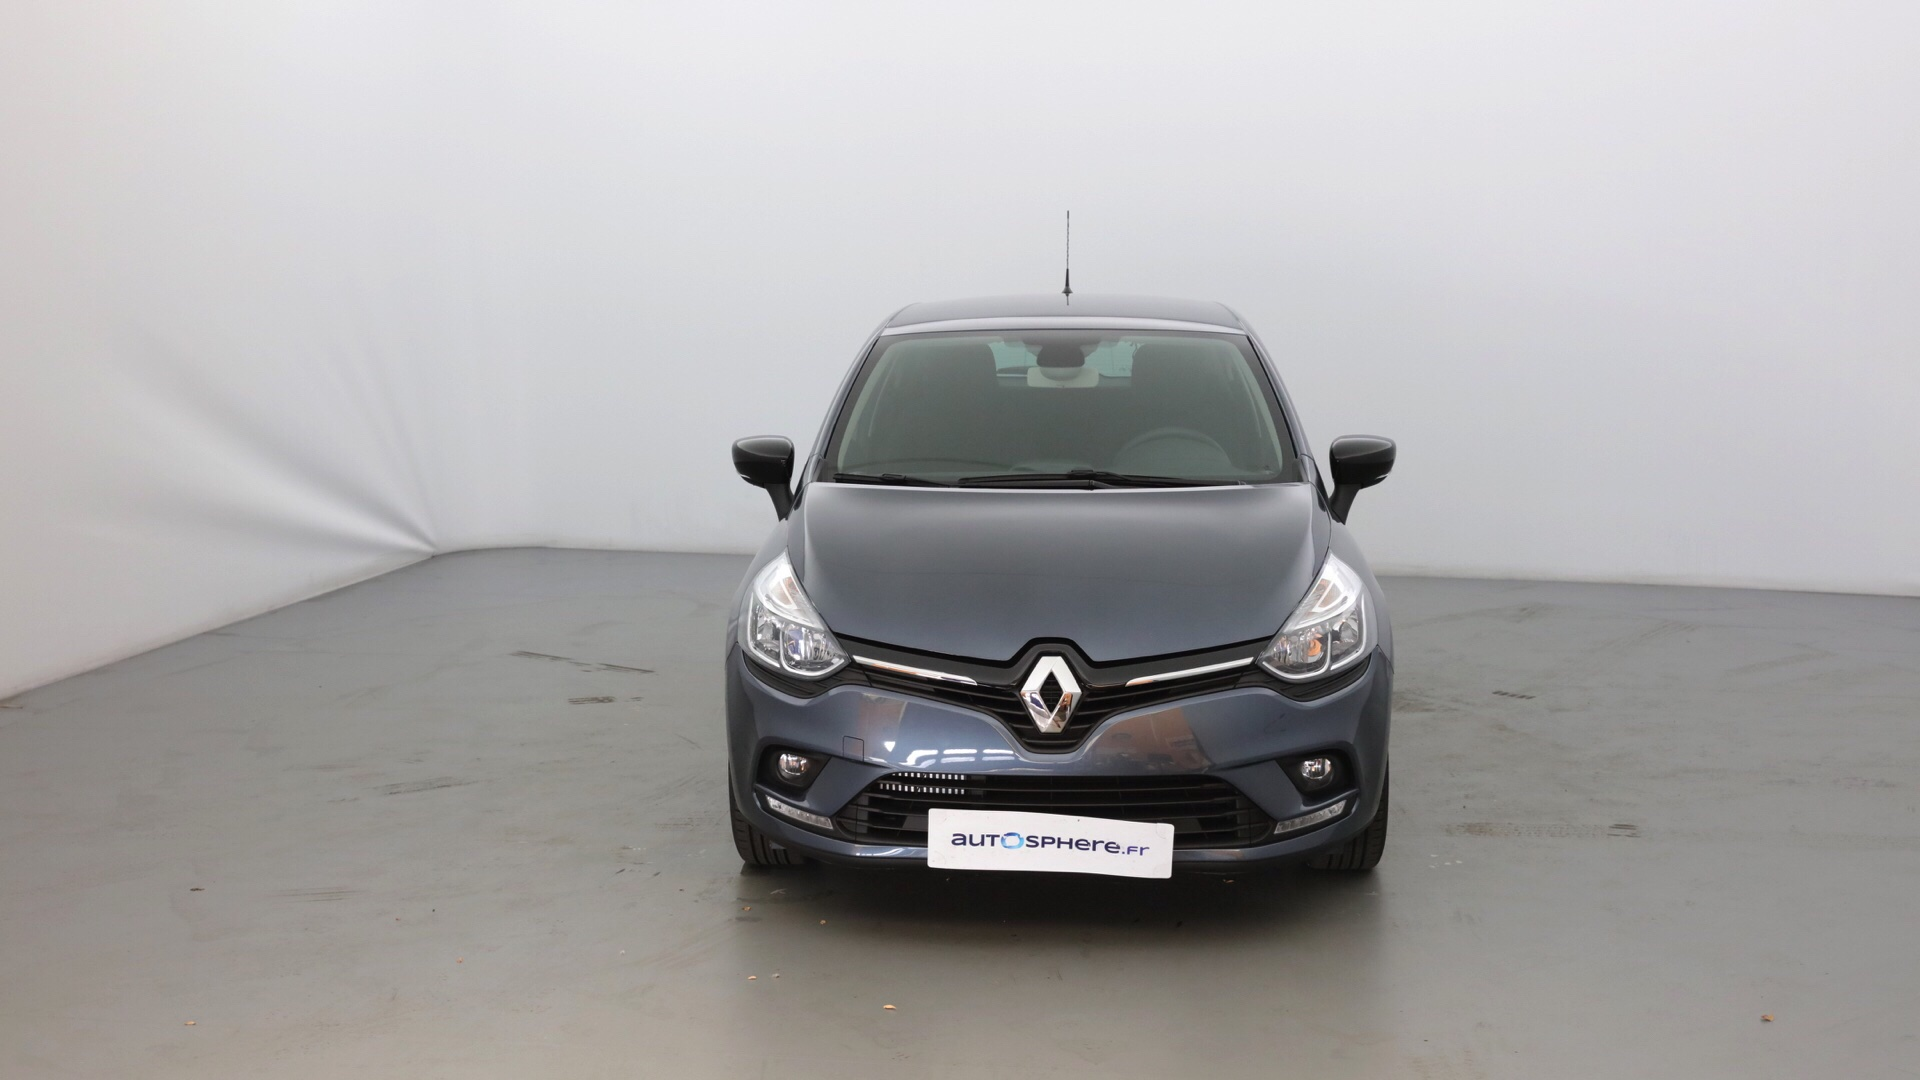 RENAULT CLIO 0.9 TCE 90CH ENERGY LIMITED 5P - Miniature 2